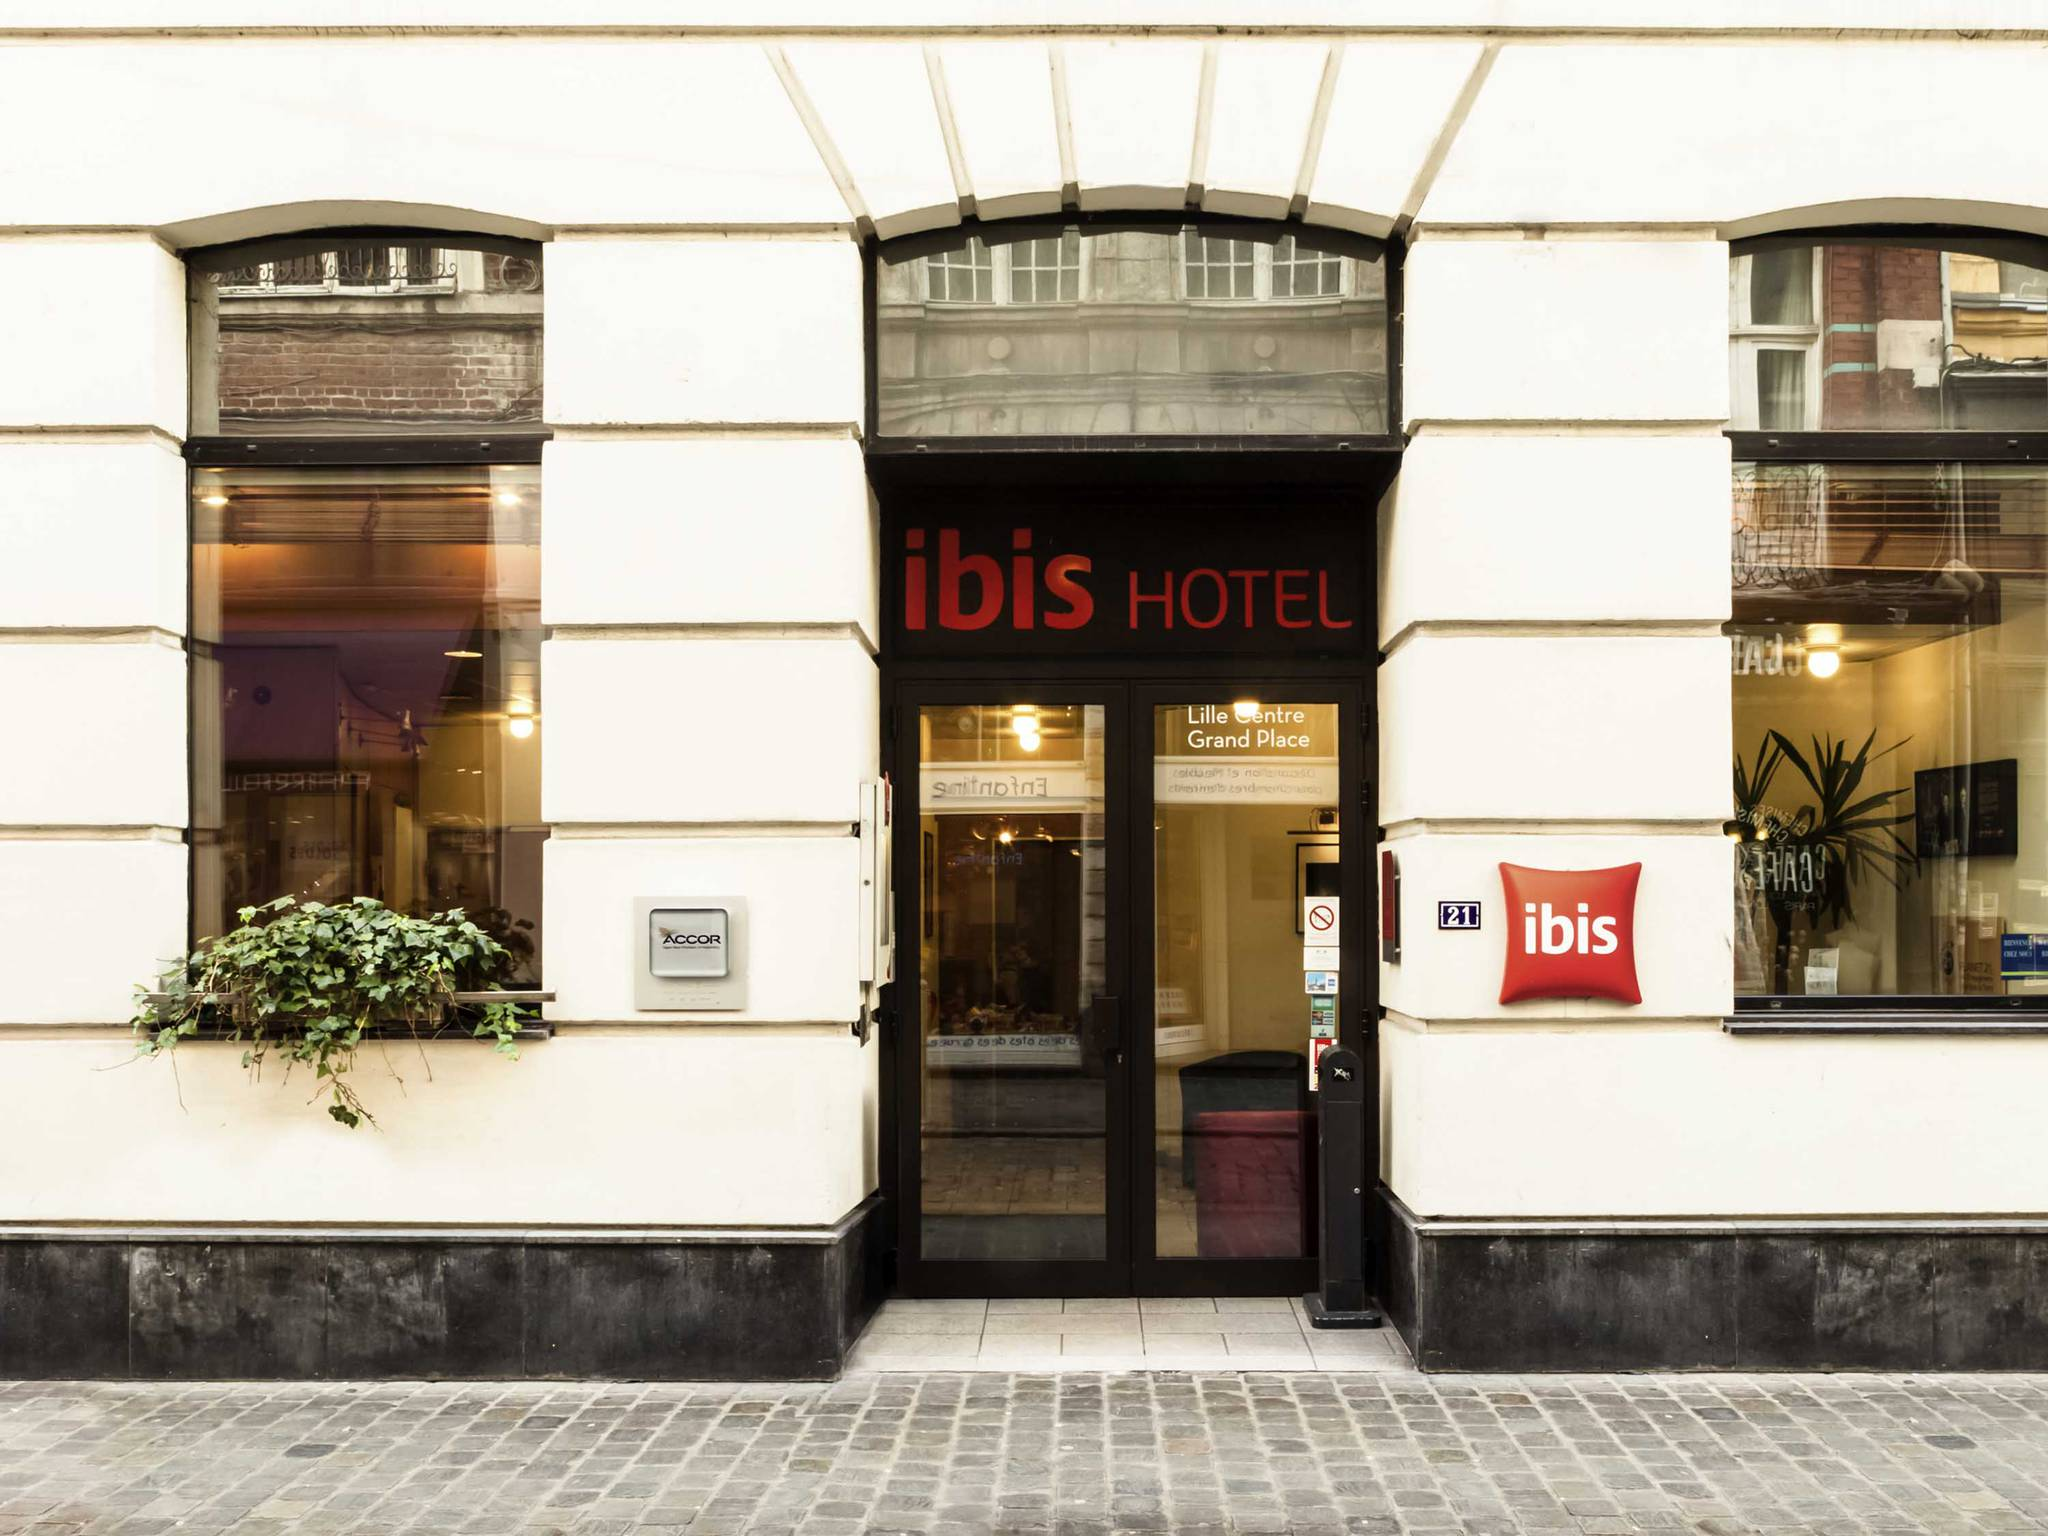 hotel in lille ibis lille centre grand place. Black Bedroom Furniture Sets. Home Design Ideas